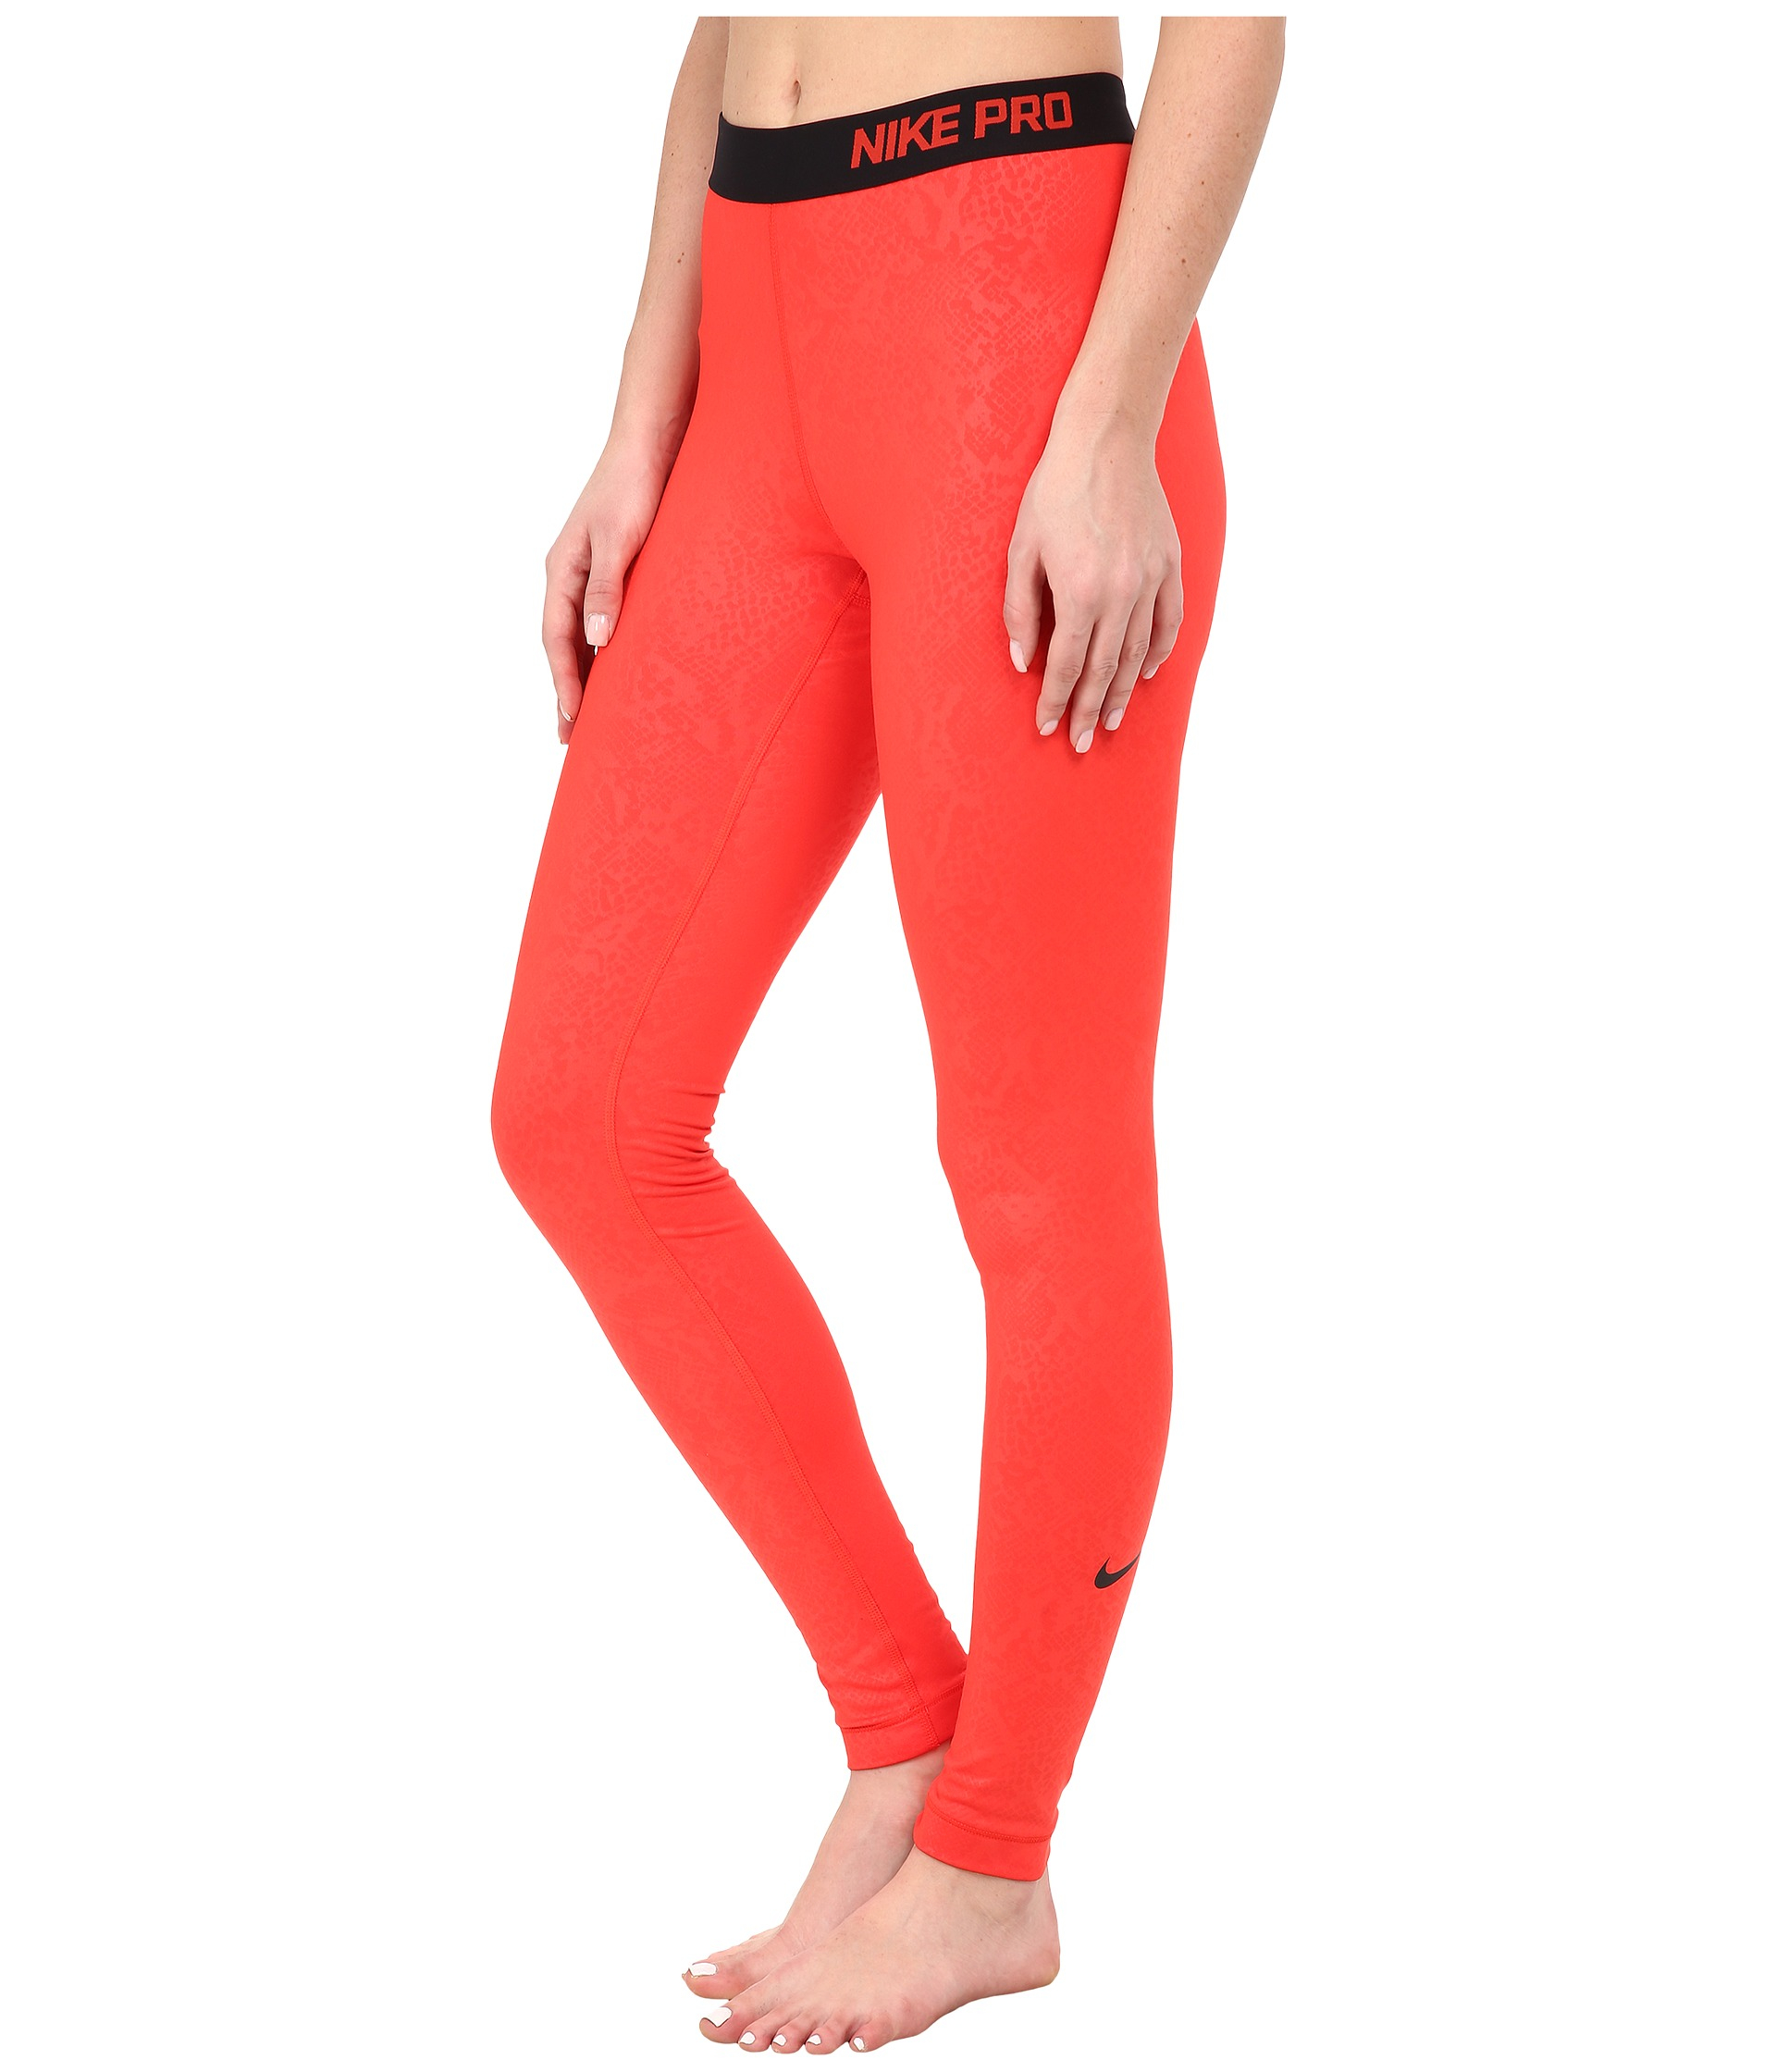 9dbebbfdbf065 Nike Pro Warm Embossed Vixen Tights in Red - Lyst